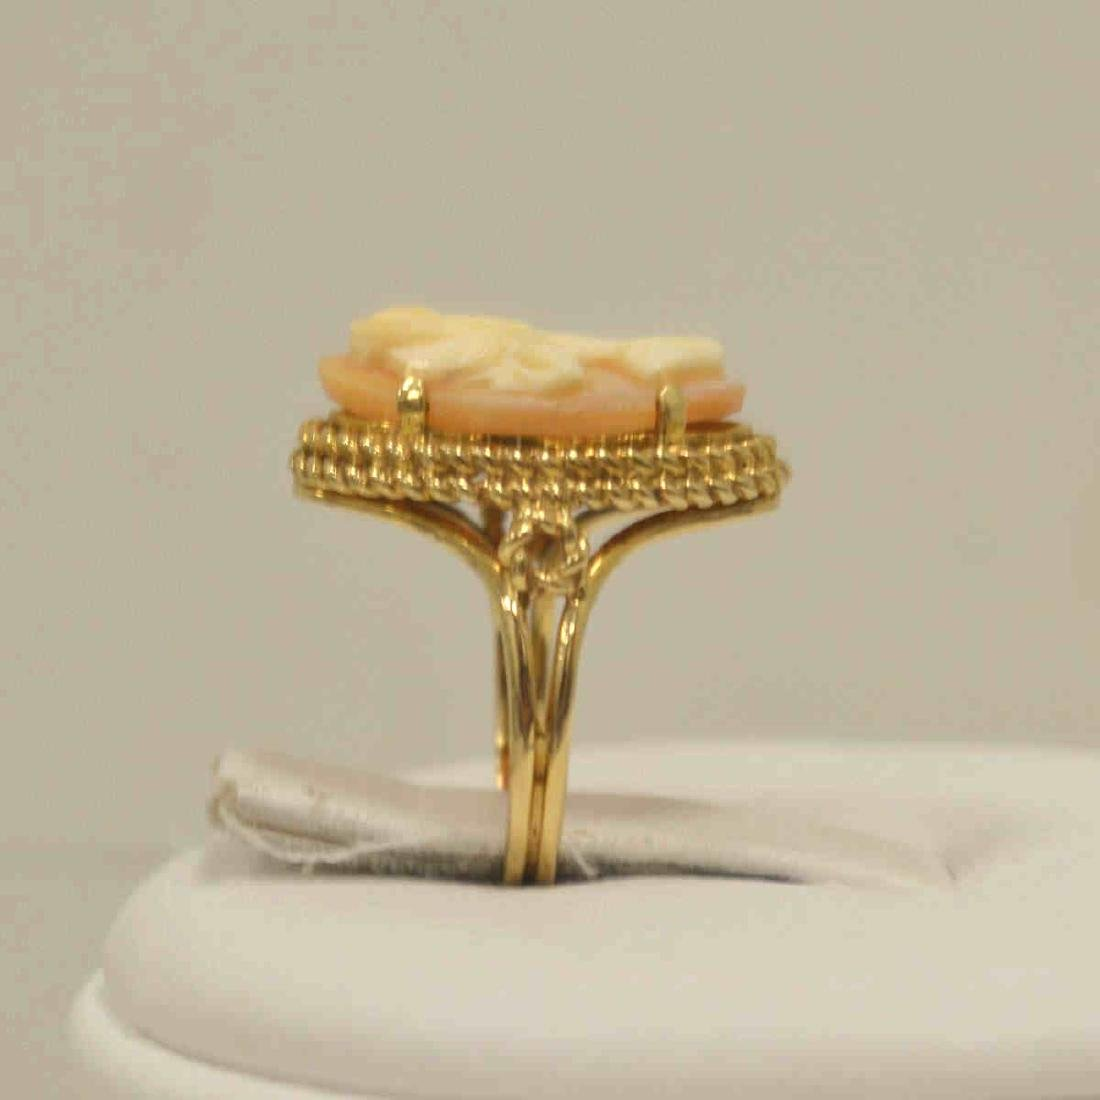 10kt yellow gold cameo ring - 4